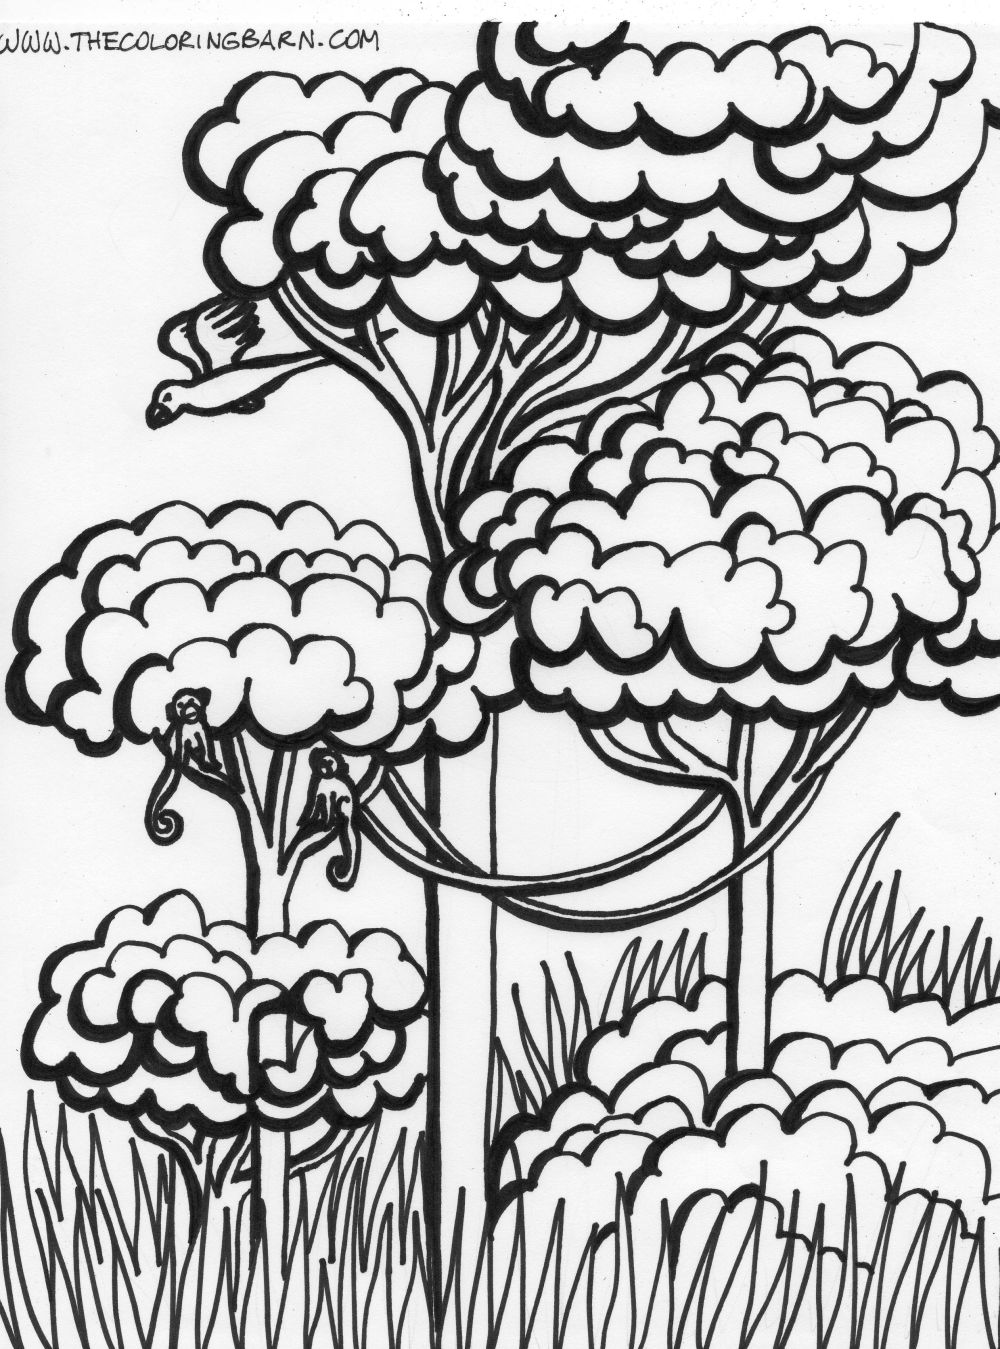 Coloring Pages Rainforest Plants Coloring Pages jungle plants coloring pages images free download pages